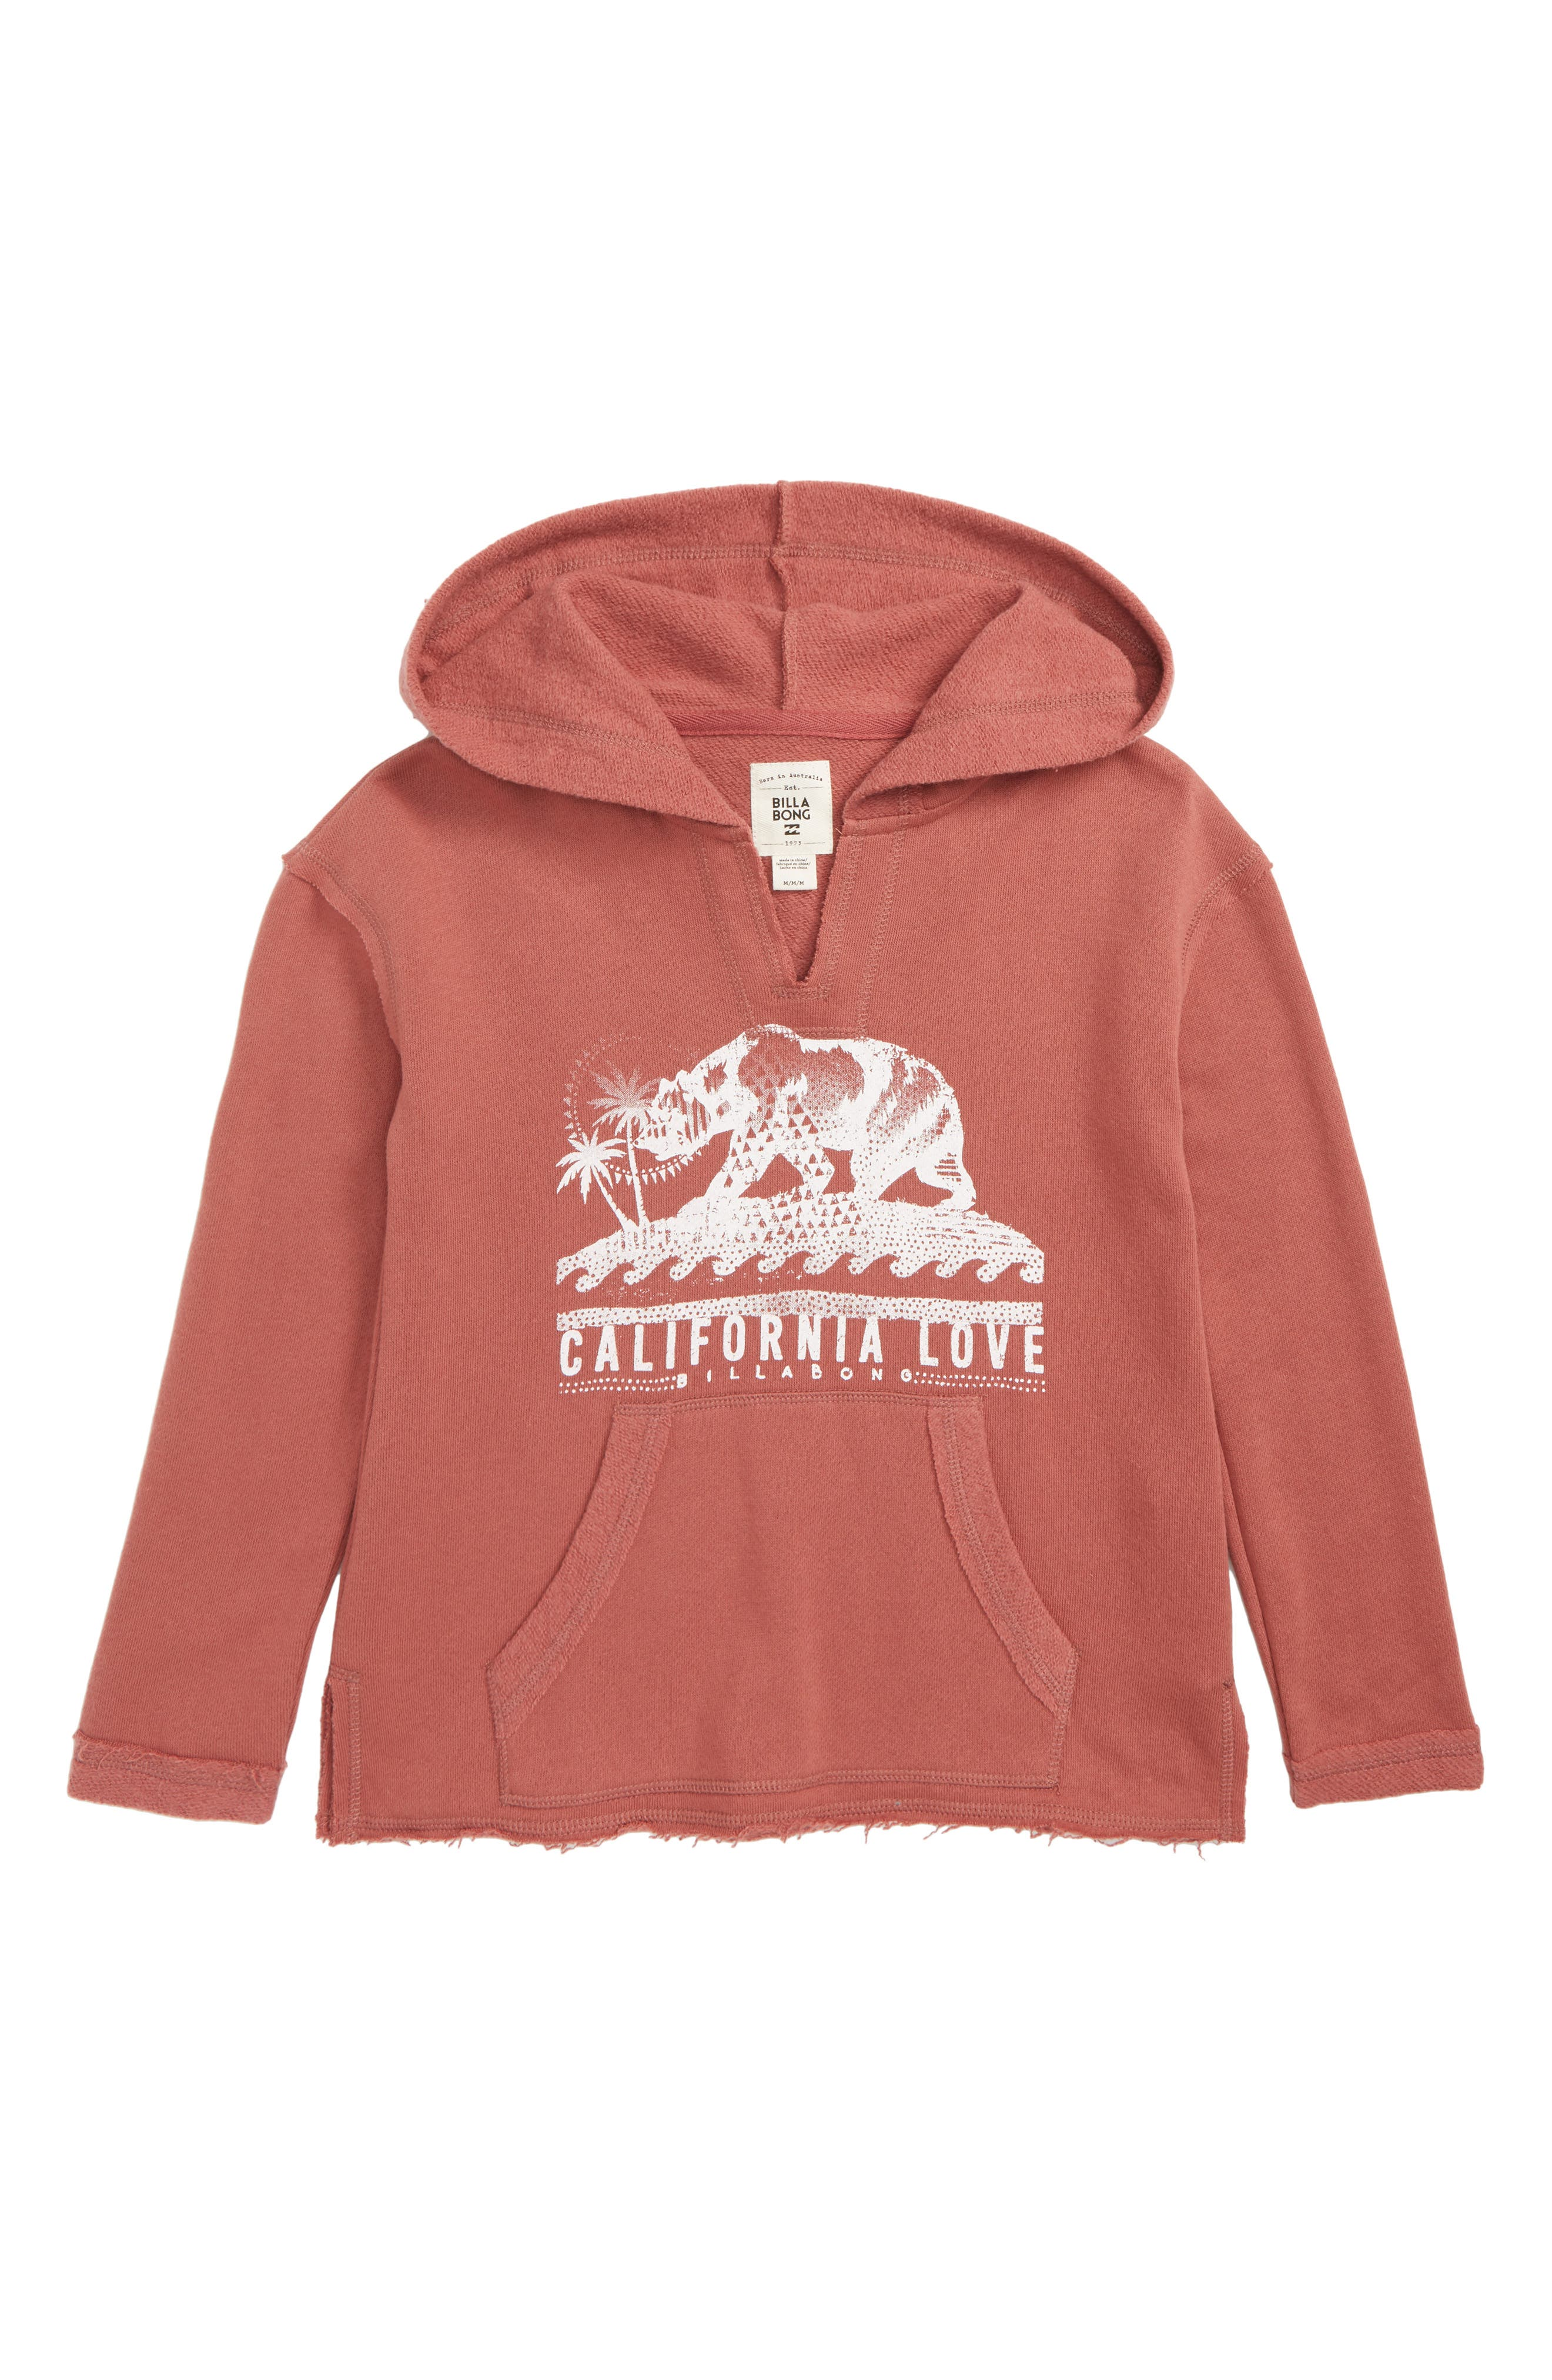 Days Off Pullover Hoodie,                             Main thumbnail 1, color,                             VINTAGE PLUM